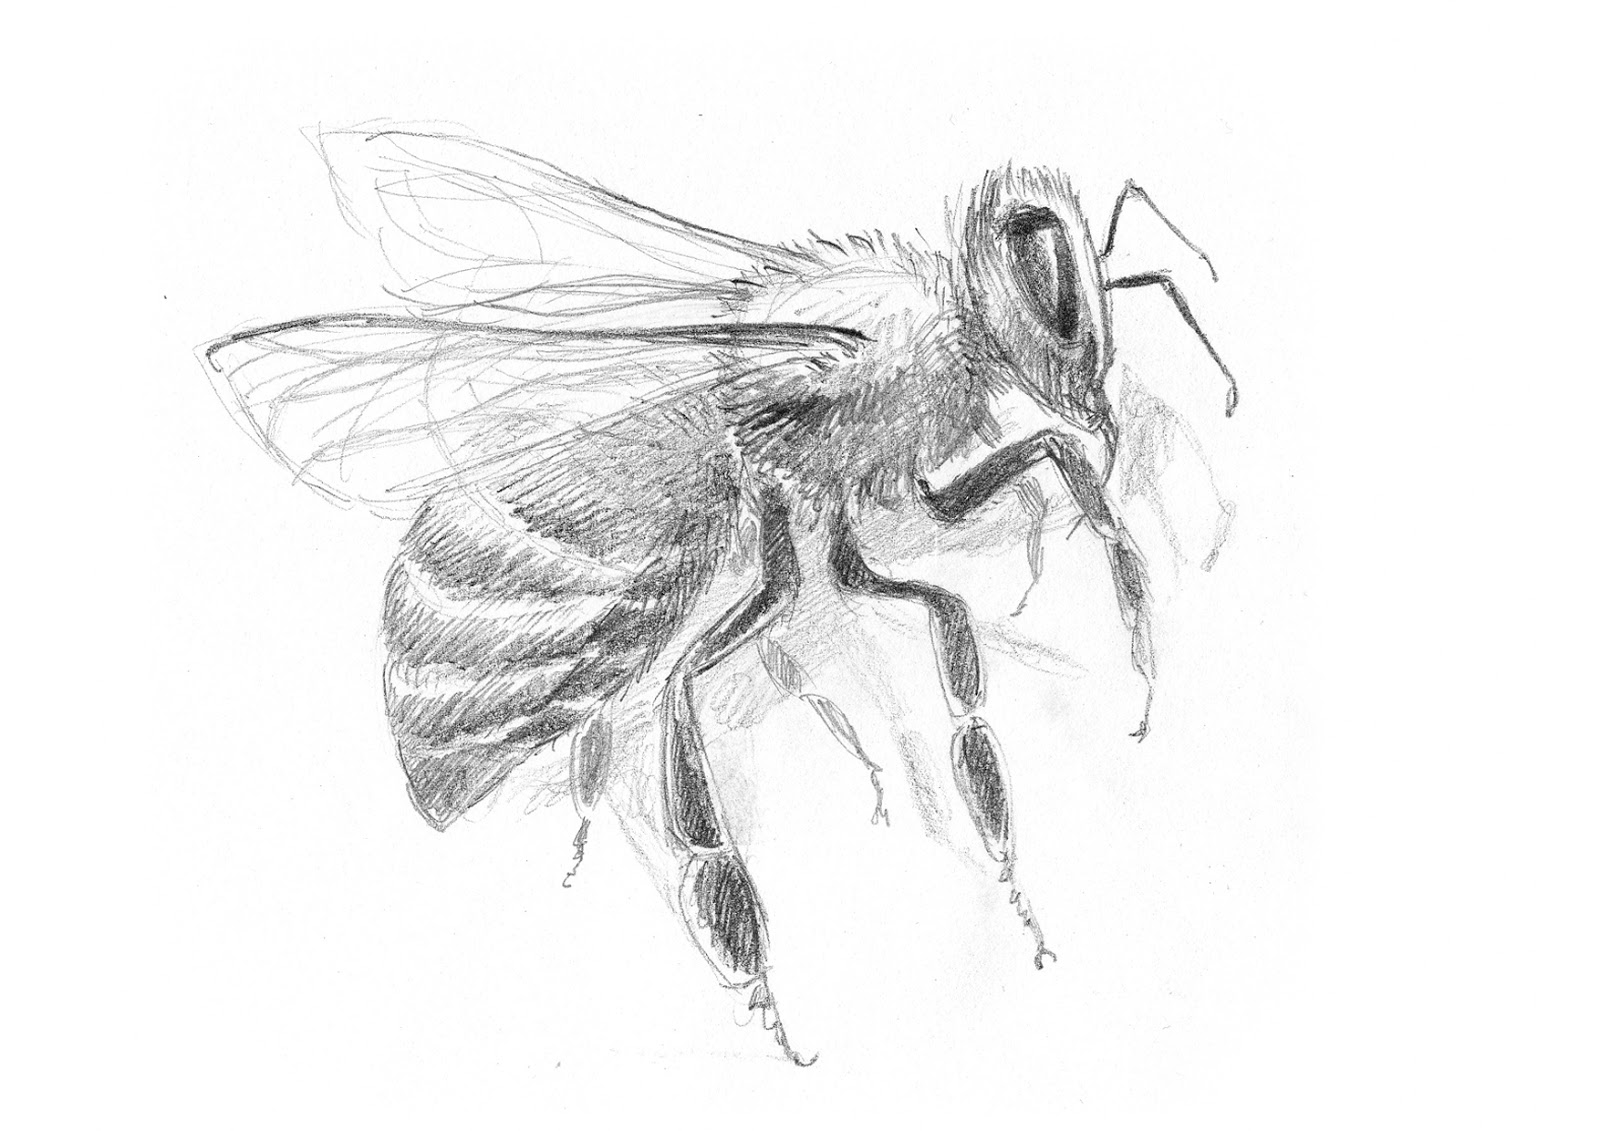 animal and insect drawings 3 2014 dirk parijs work